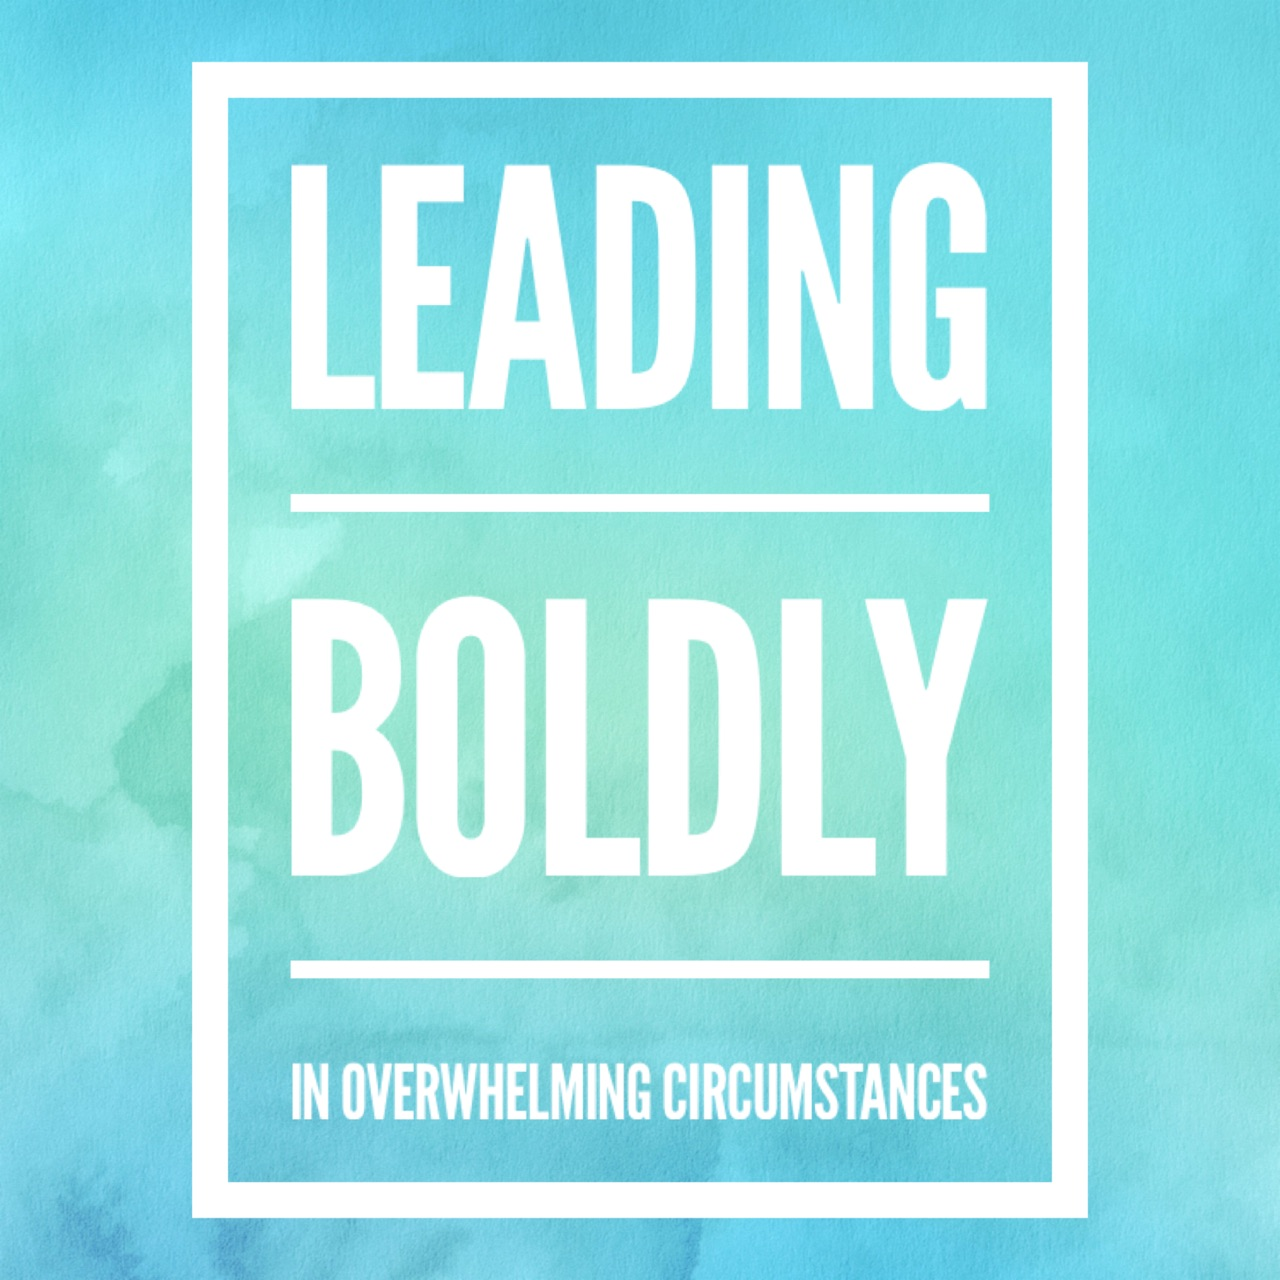 Leading Boldly in overwhelming circumstances